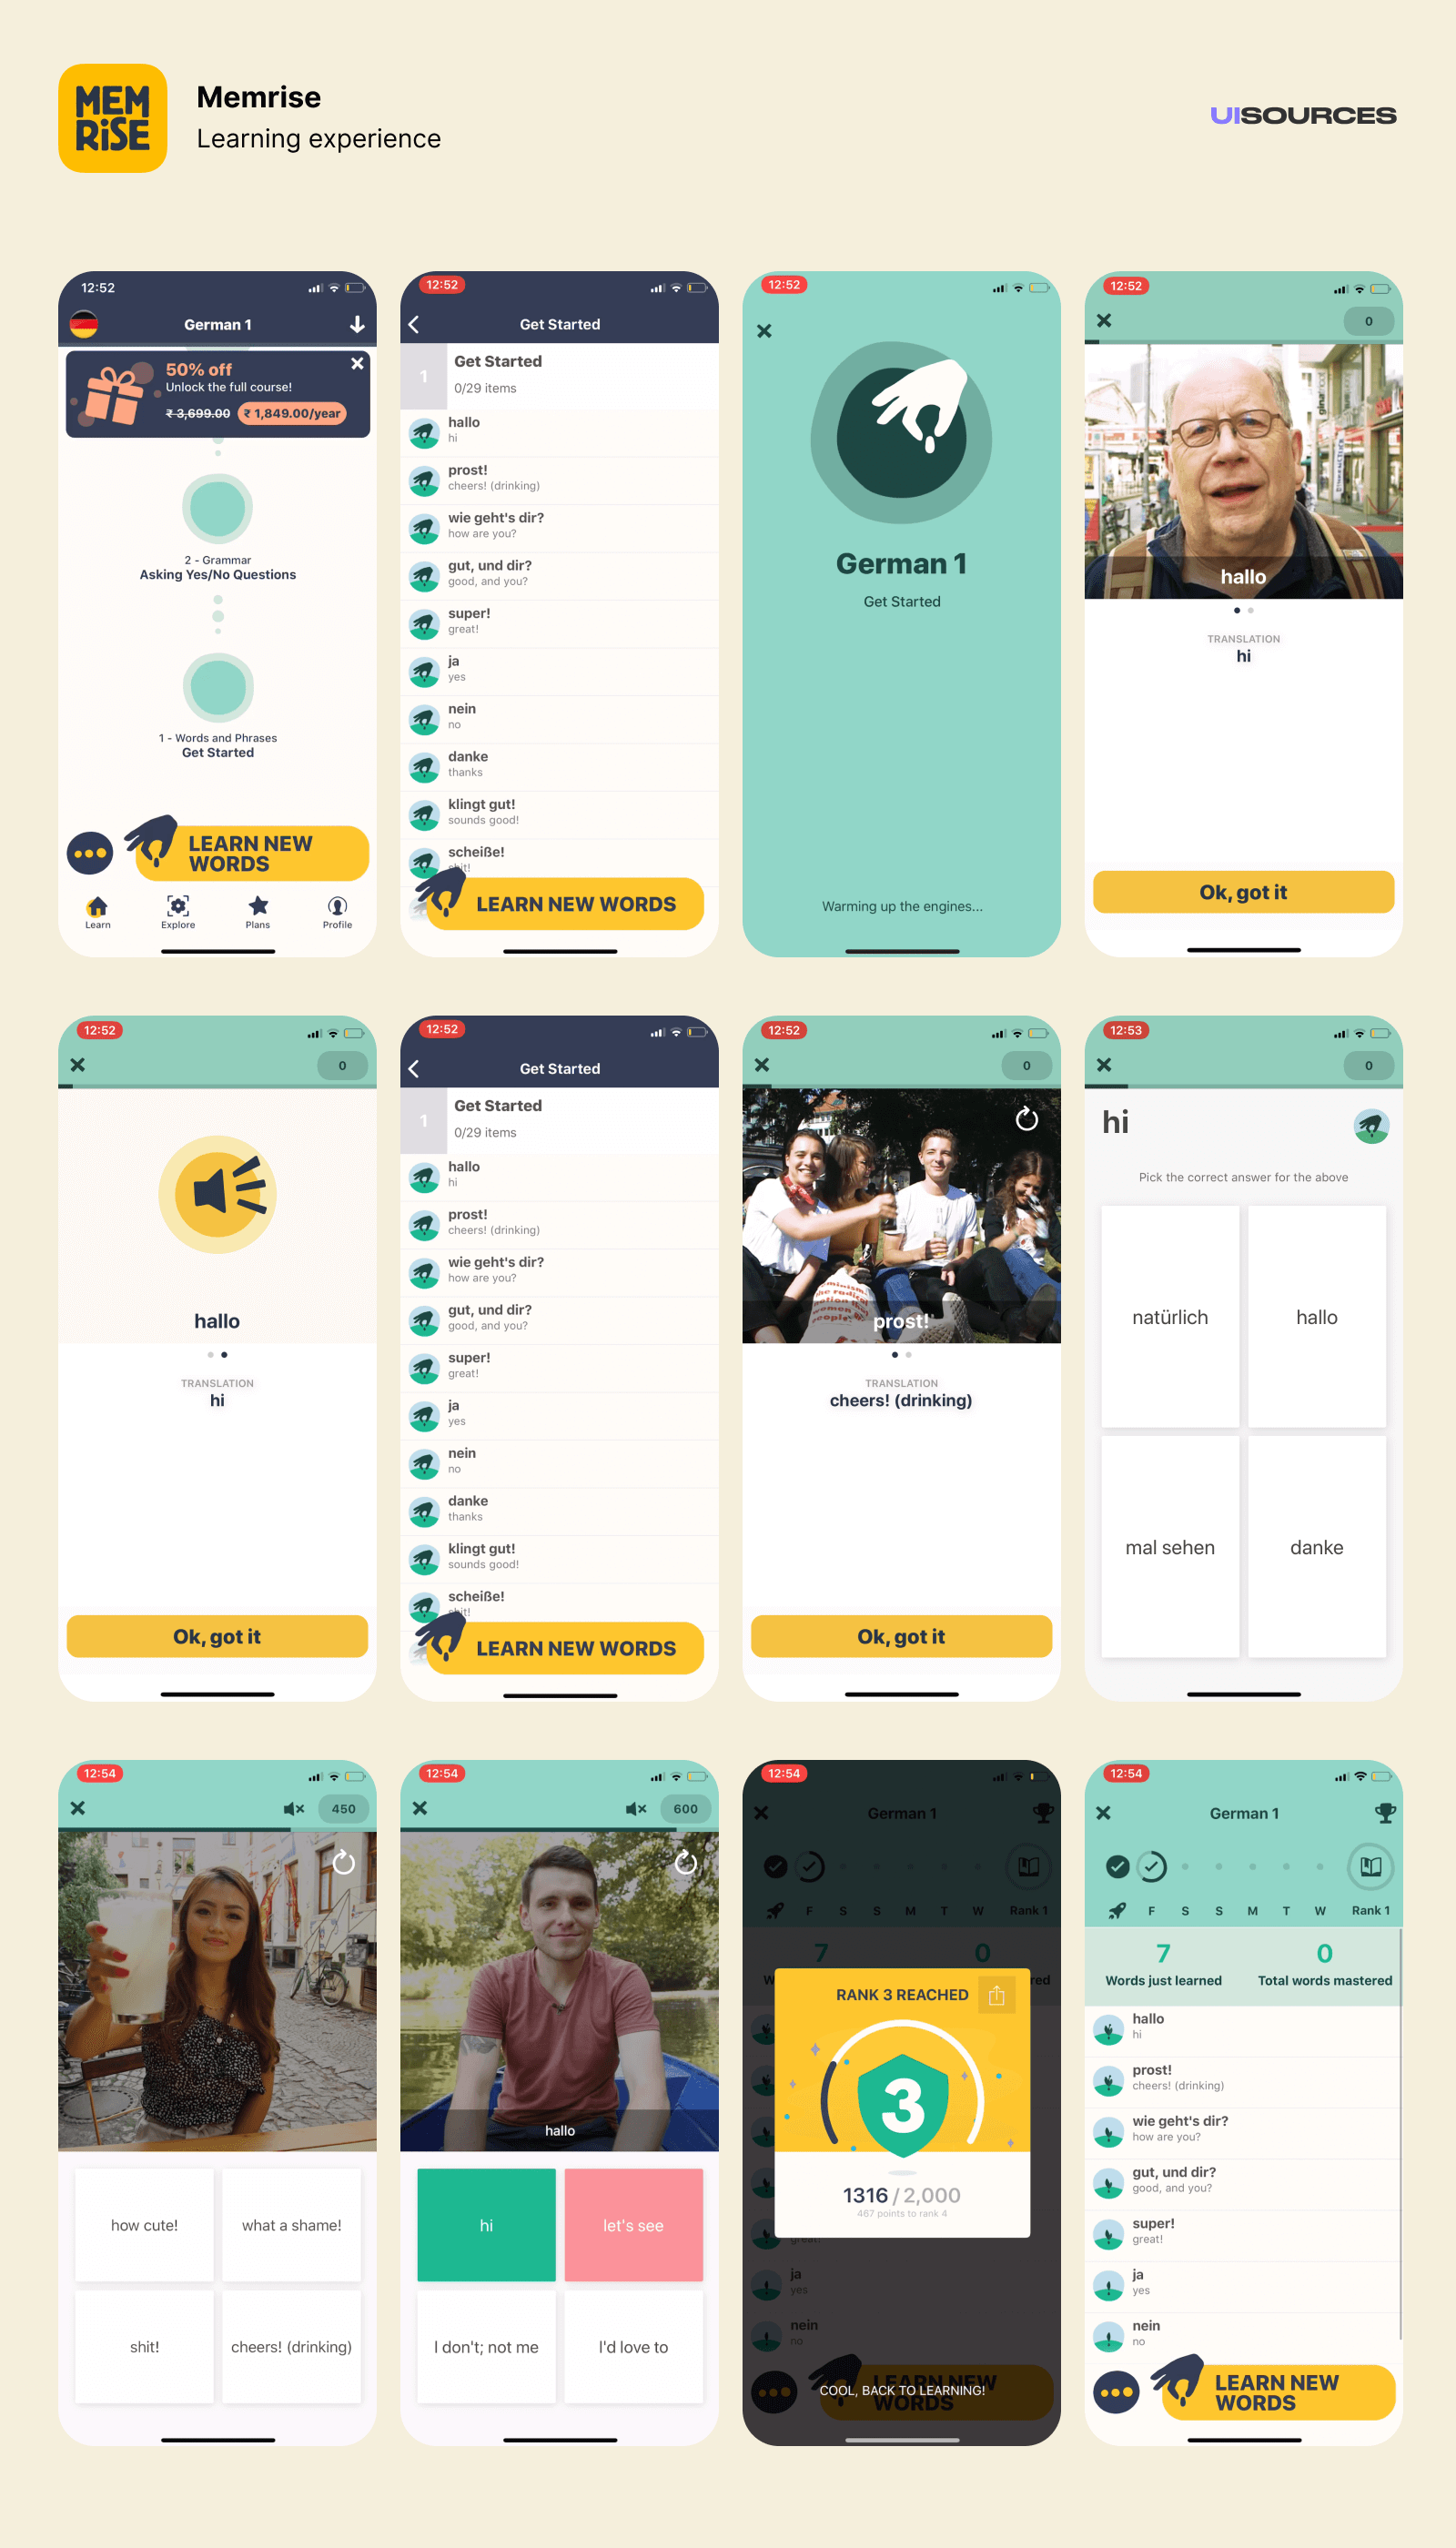 Memrise - Learning experience | UI Sources